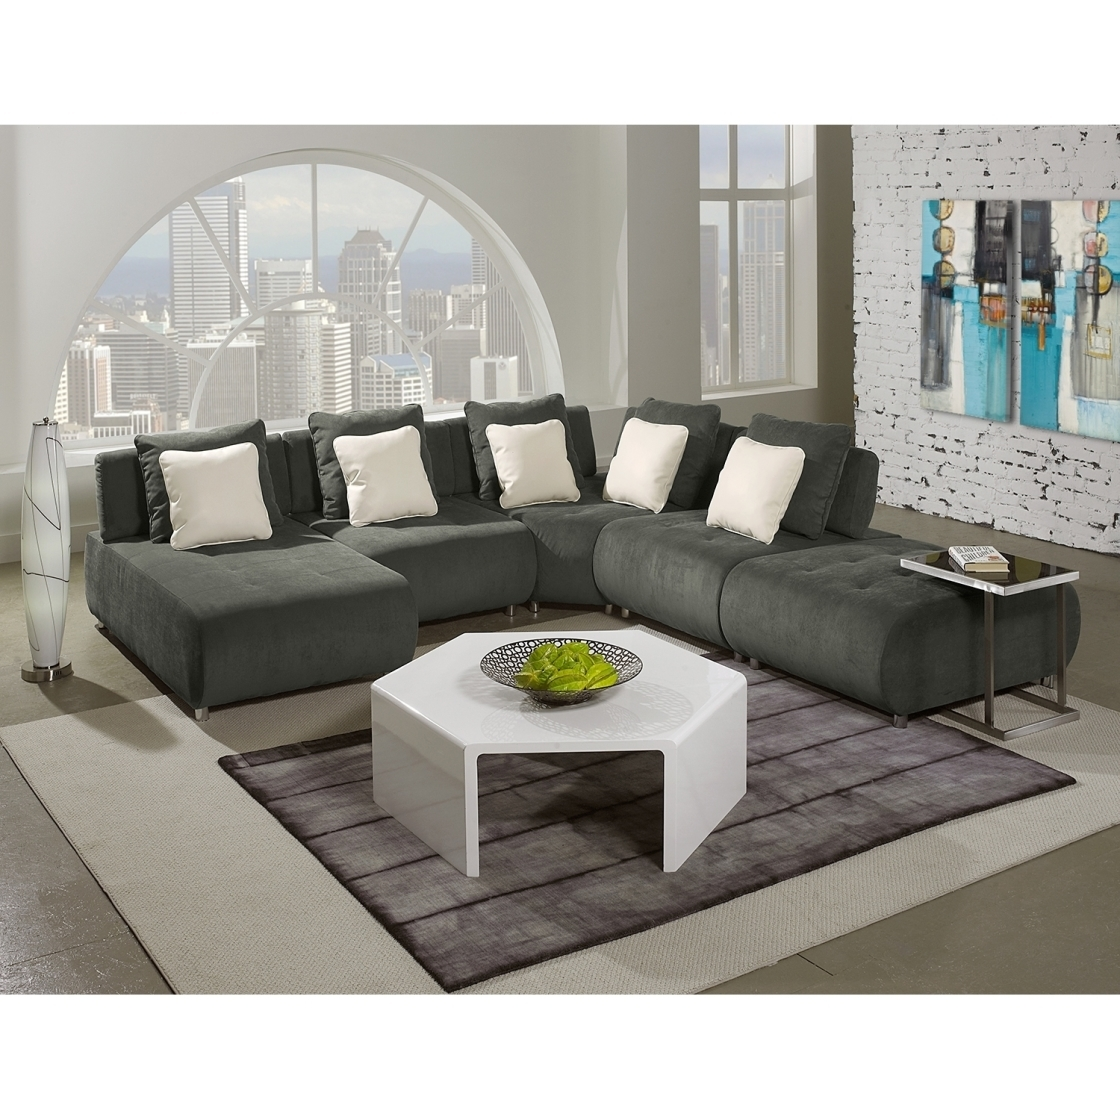 Latest Trend Of Small U Shaped Sectional Sofa 66 For Sectional Sofa Pertaining To Small U Shaped Sectional Sofas (Image 4 of 10)